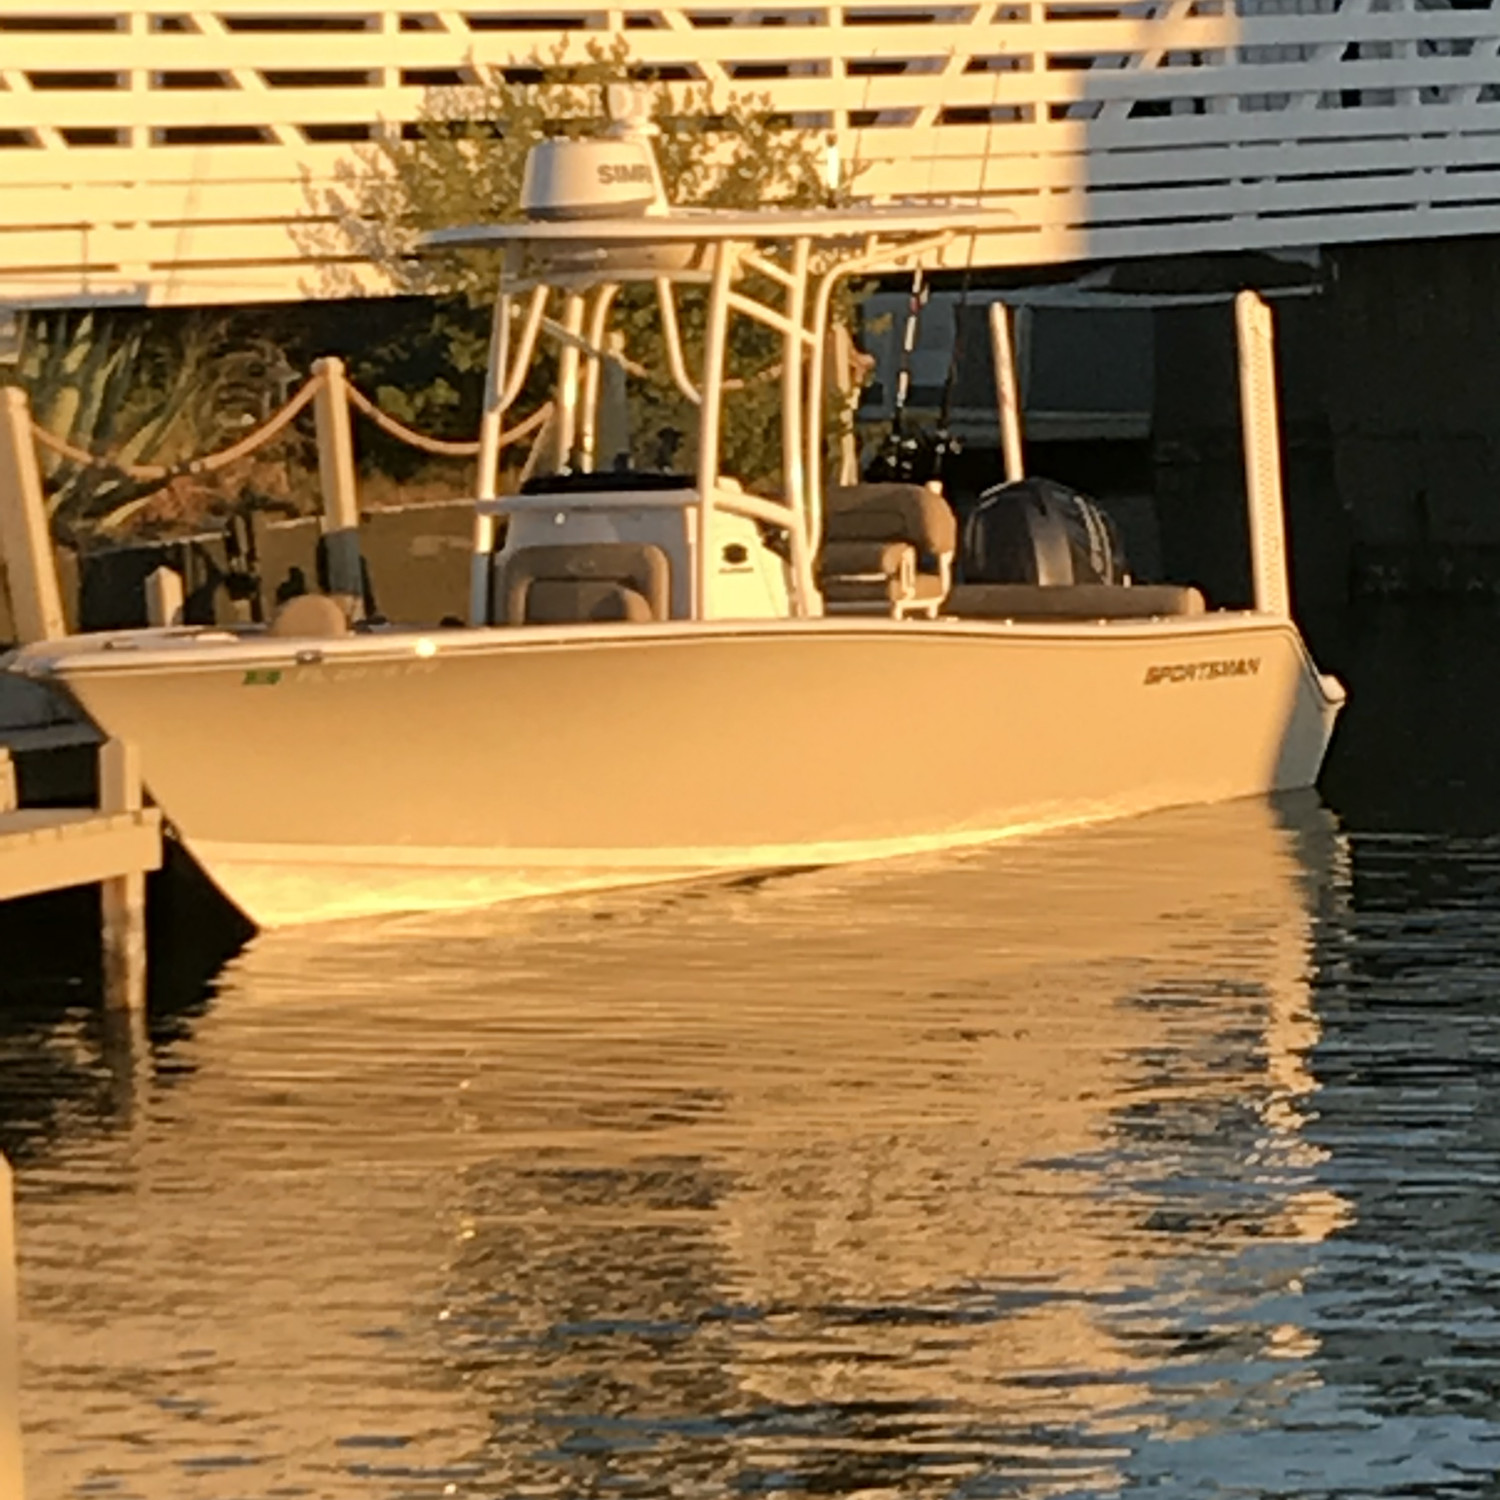 Title: Island life. - On board their Sportsman Heritage 211 Center Console - Location: Islamorada, FL. Participating in the Photo Contest #SportsmanFebruary2018